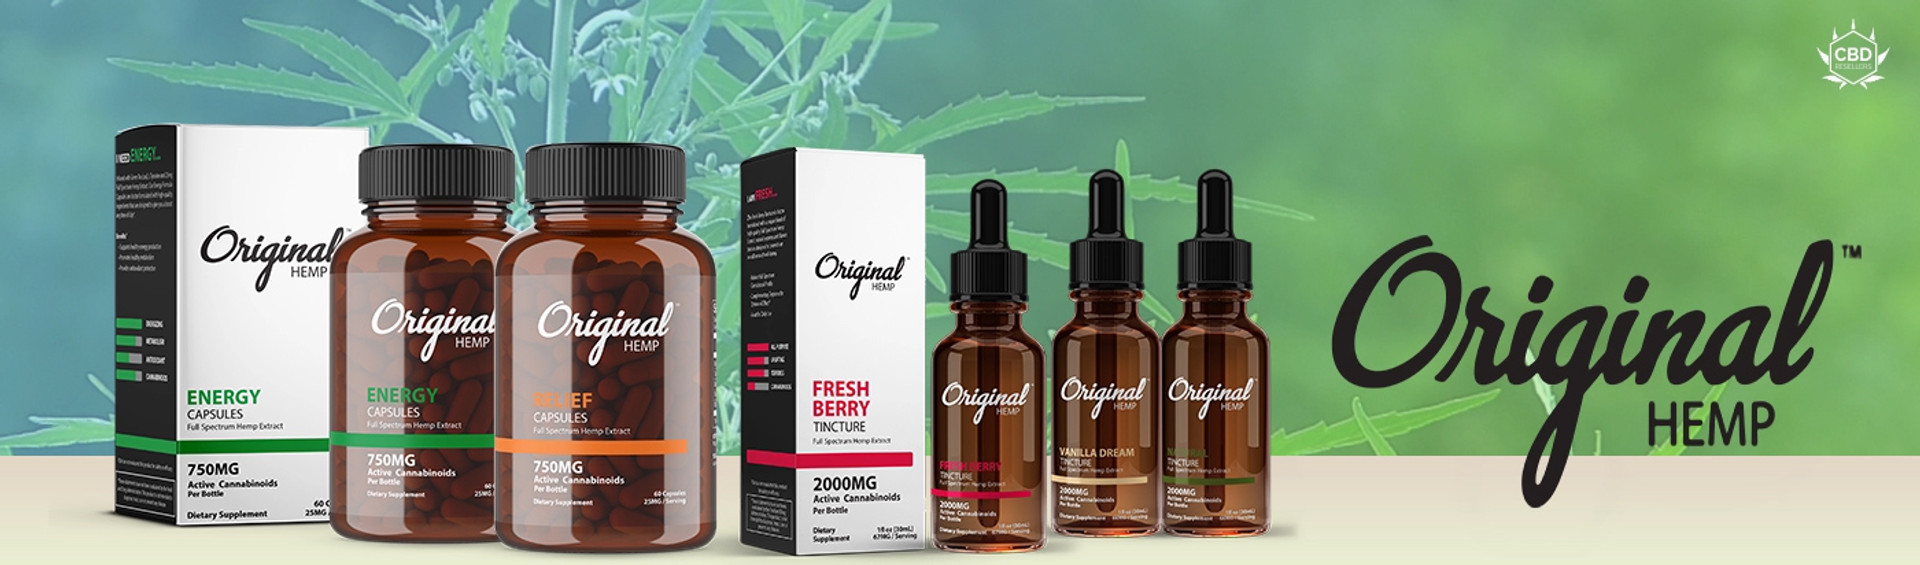 Original Hemp by Arise Bioscience Go above and beyond in everything we do from ingredient sourcing to formulating, manufacturing, testing, and educating. We're driven by the ultimate goal of bringing you the full line up of Original Hemp CBD products that